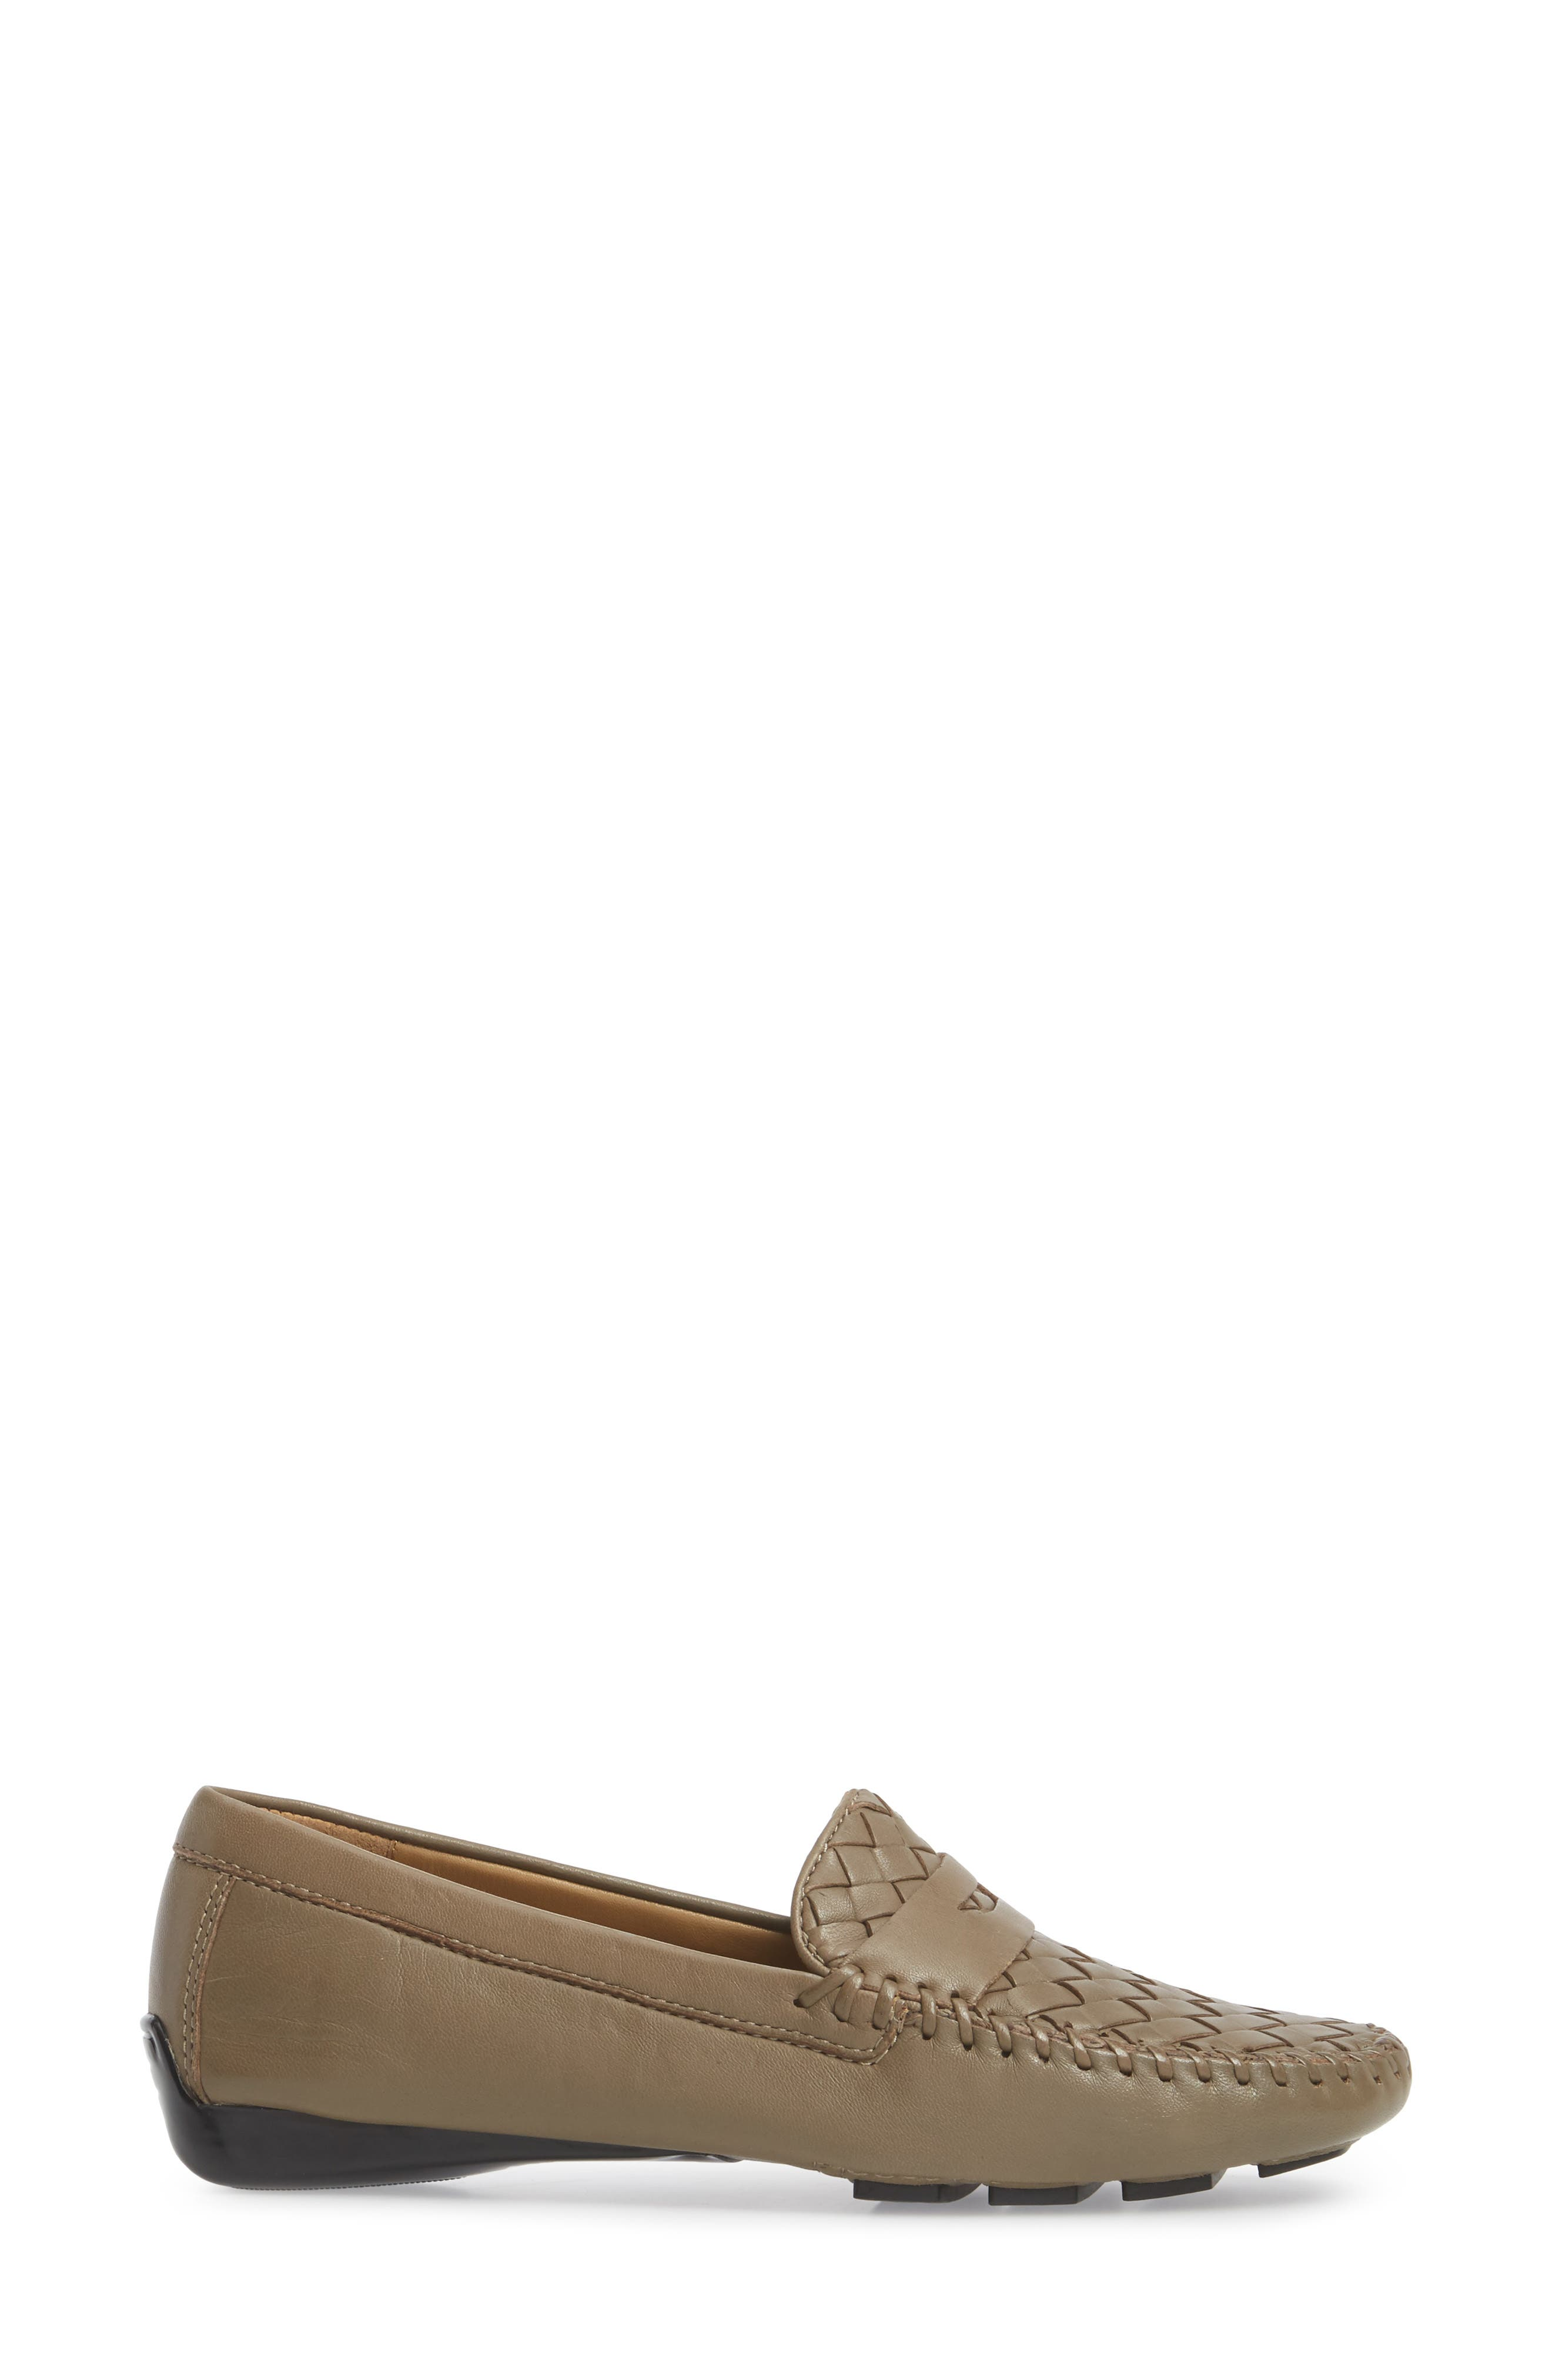 'Petra' Driving Shoe,                             Alternate thumbnail 3, color,                             UMBER LEATHER